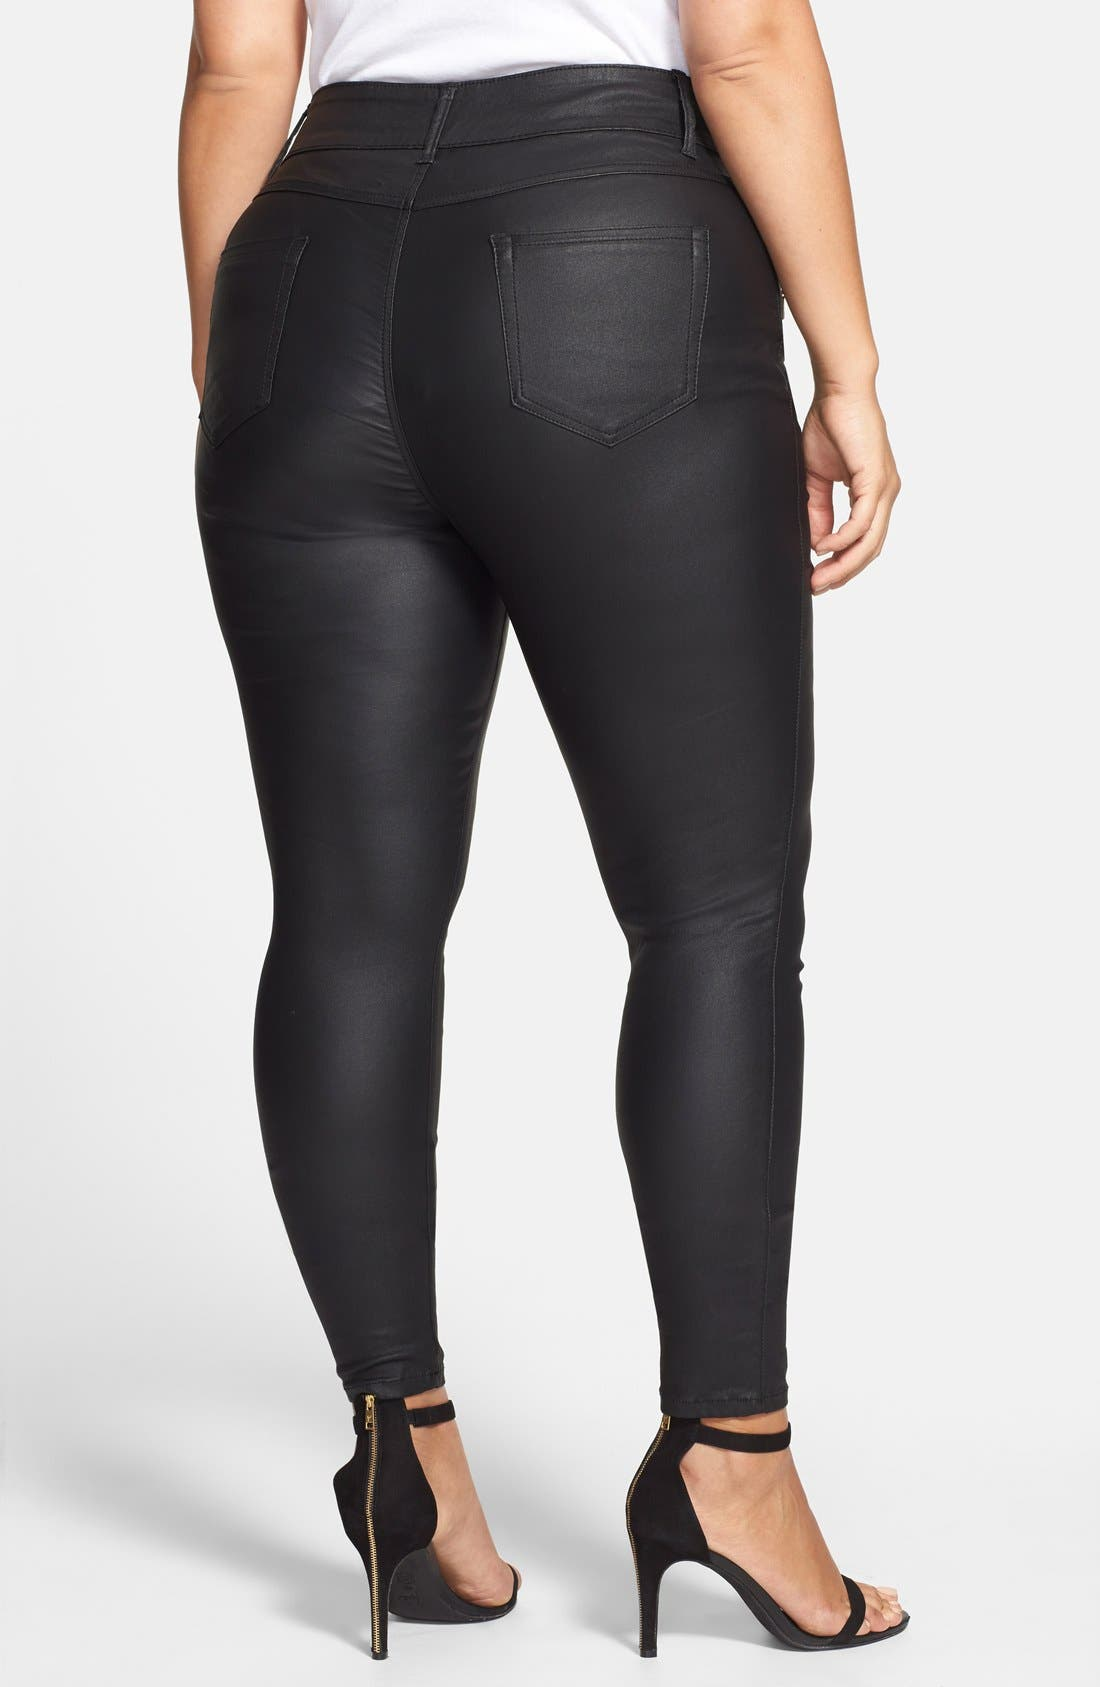 Alternate Image 2  - City Chic 'Wet Look' Stretch Skinny Jeans (Black) (Plus Size)